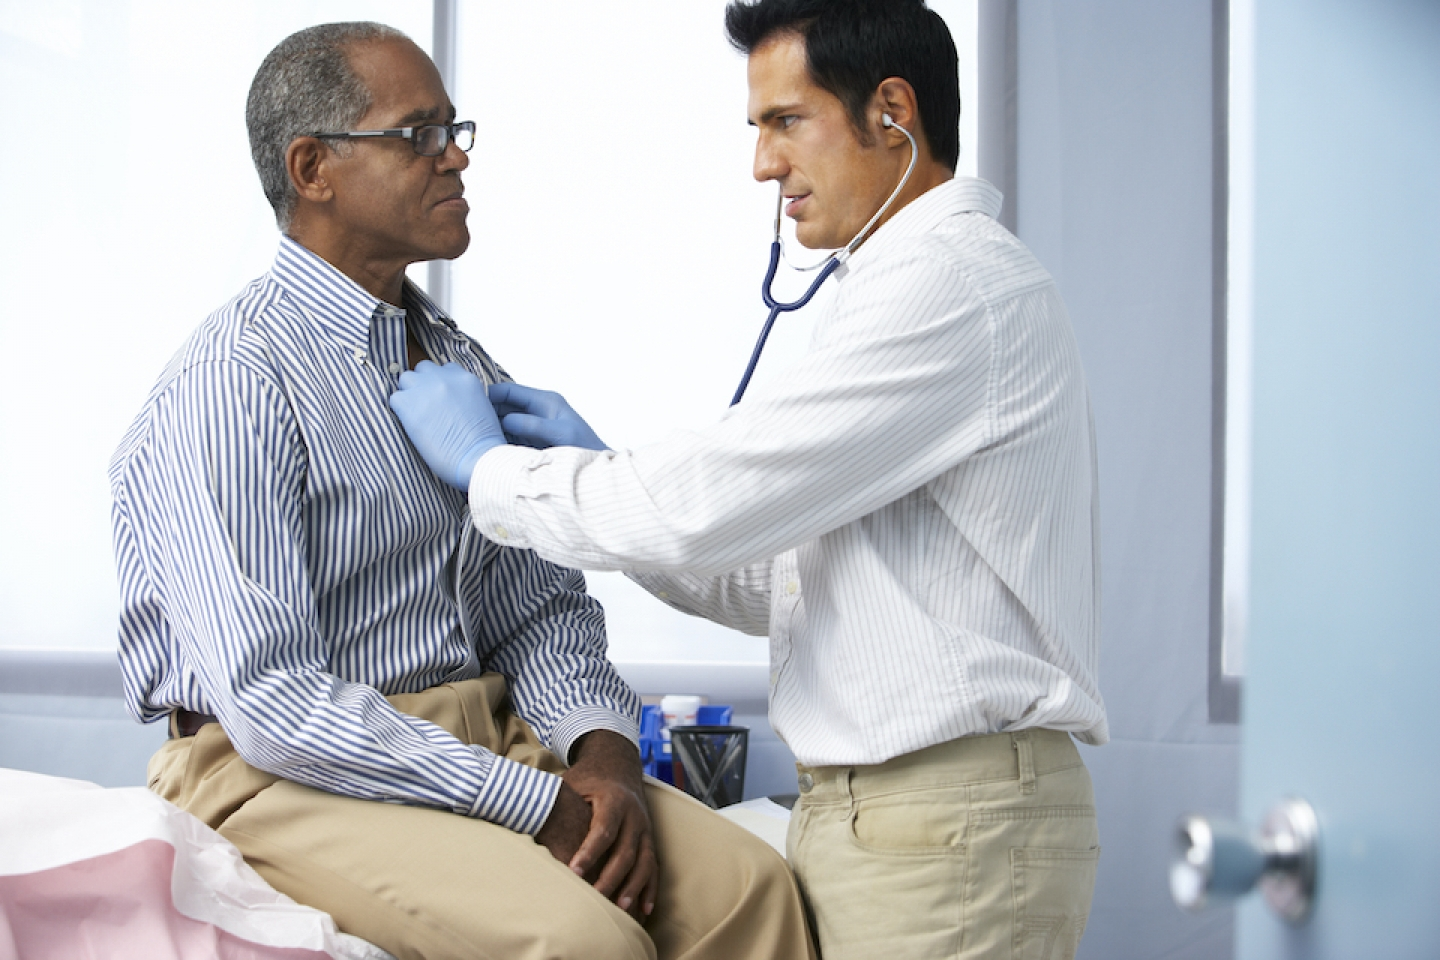 older black man meets with male doctor